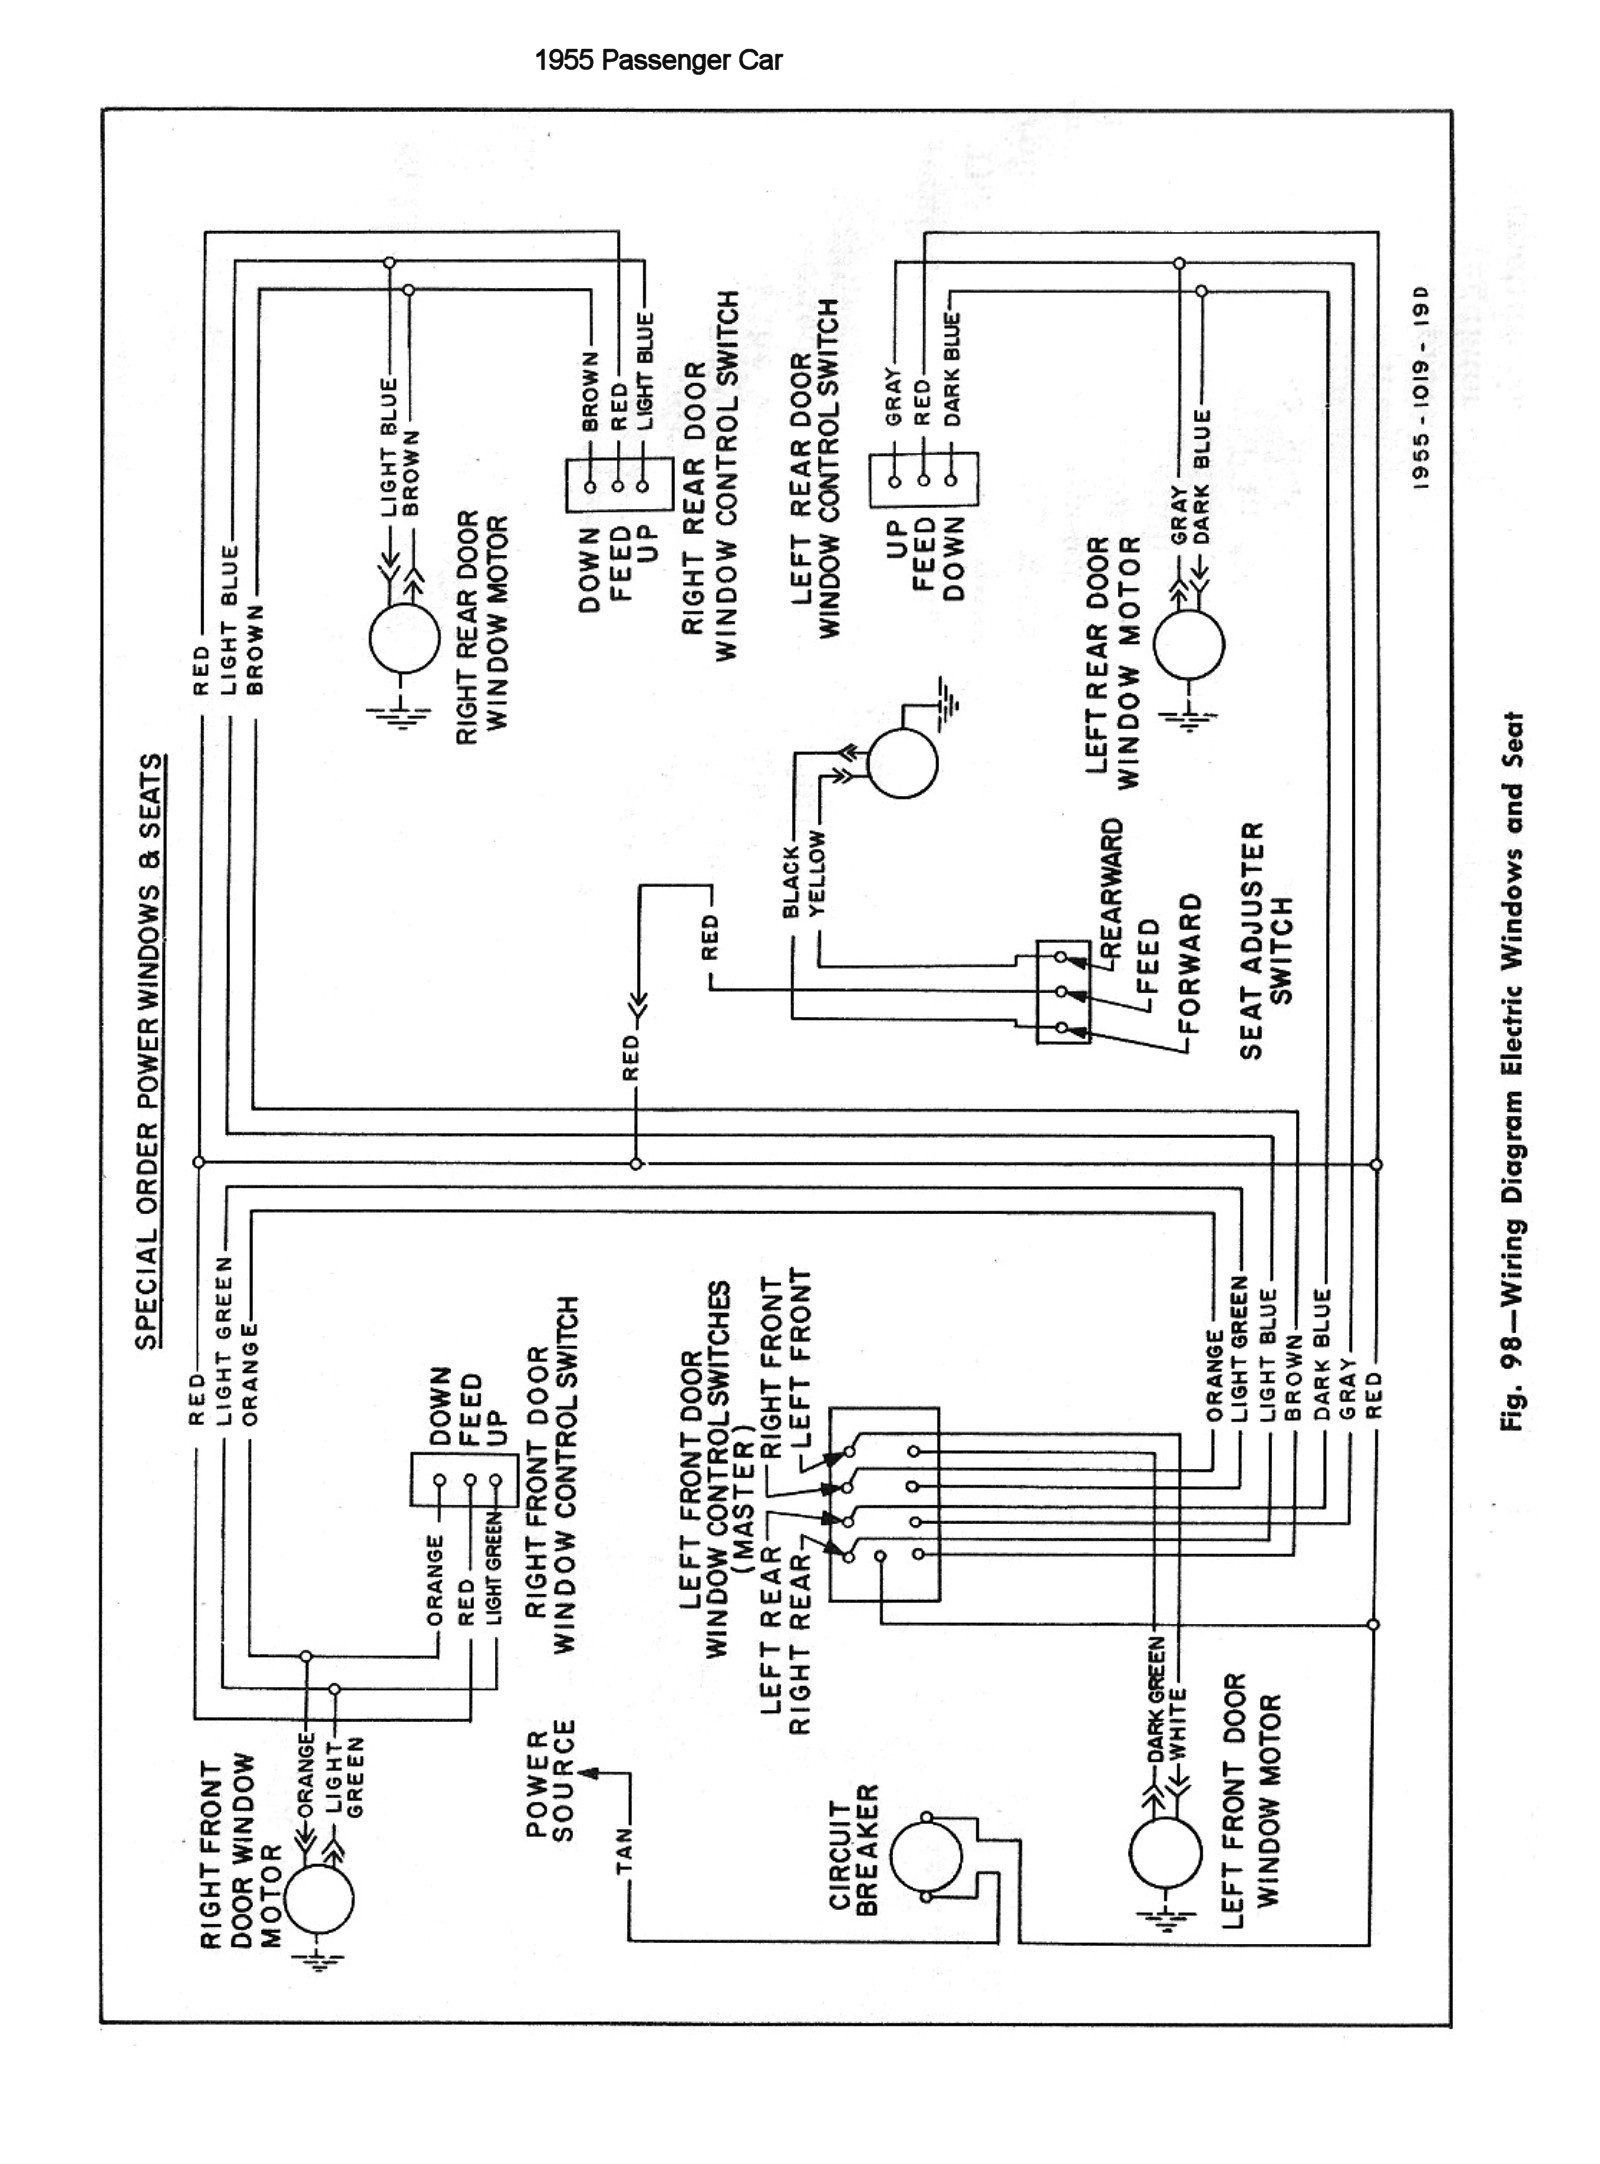 Pleasing Spartan Turn Signal Wiring Diagram Wiring Diagram Wiring 101 Eattedownsetwise Assnl